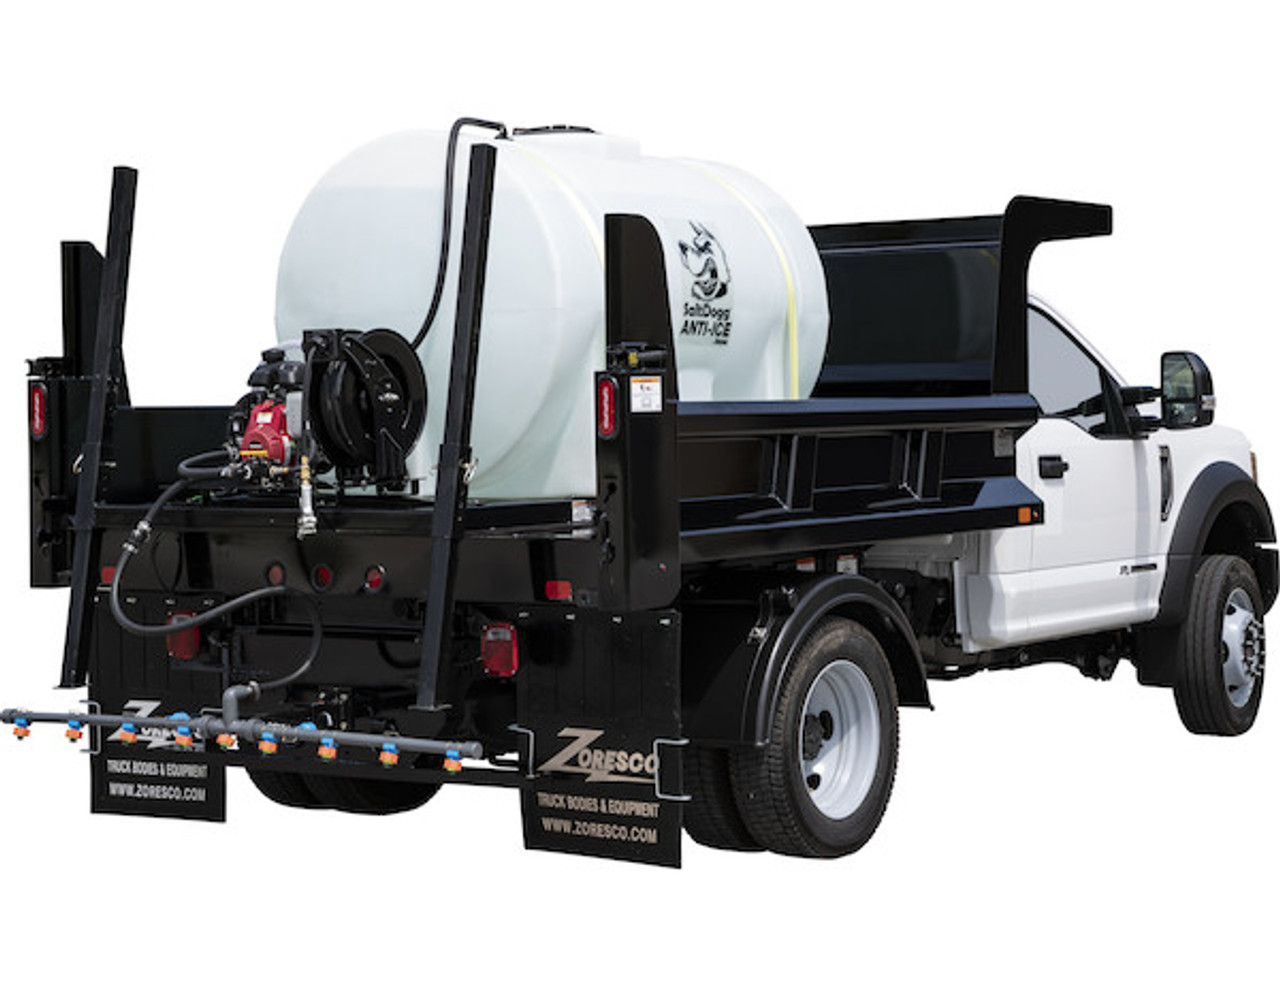 6191120 BUYERS SALTDOGG 550 GALLON GAS-POWERED ANTI-ICE SYSTEM WITH MANUAL APPLICATION RATE CONTROL 5